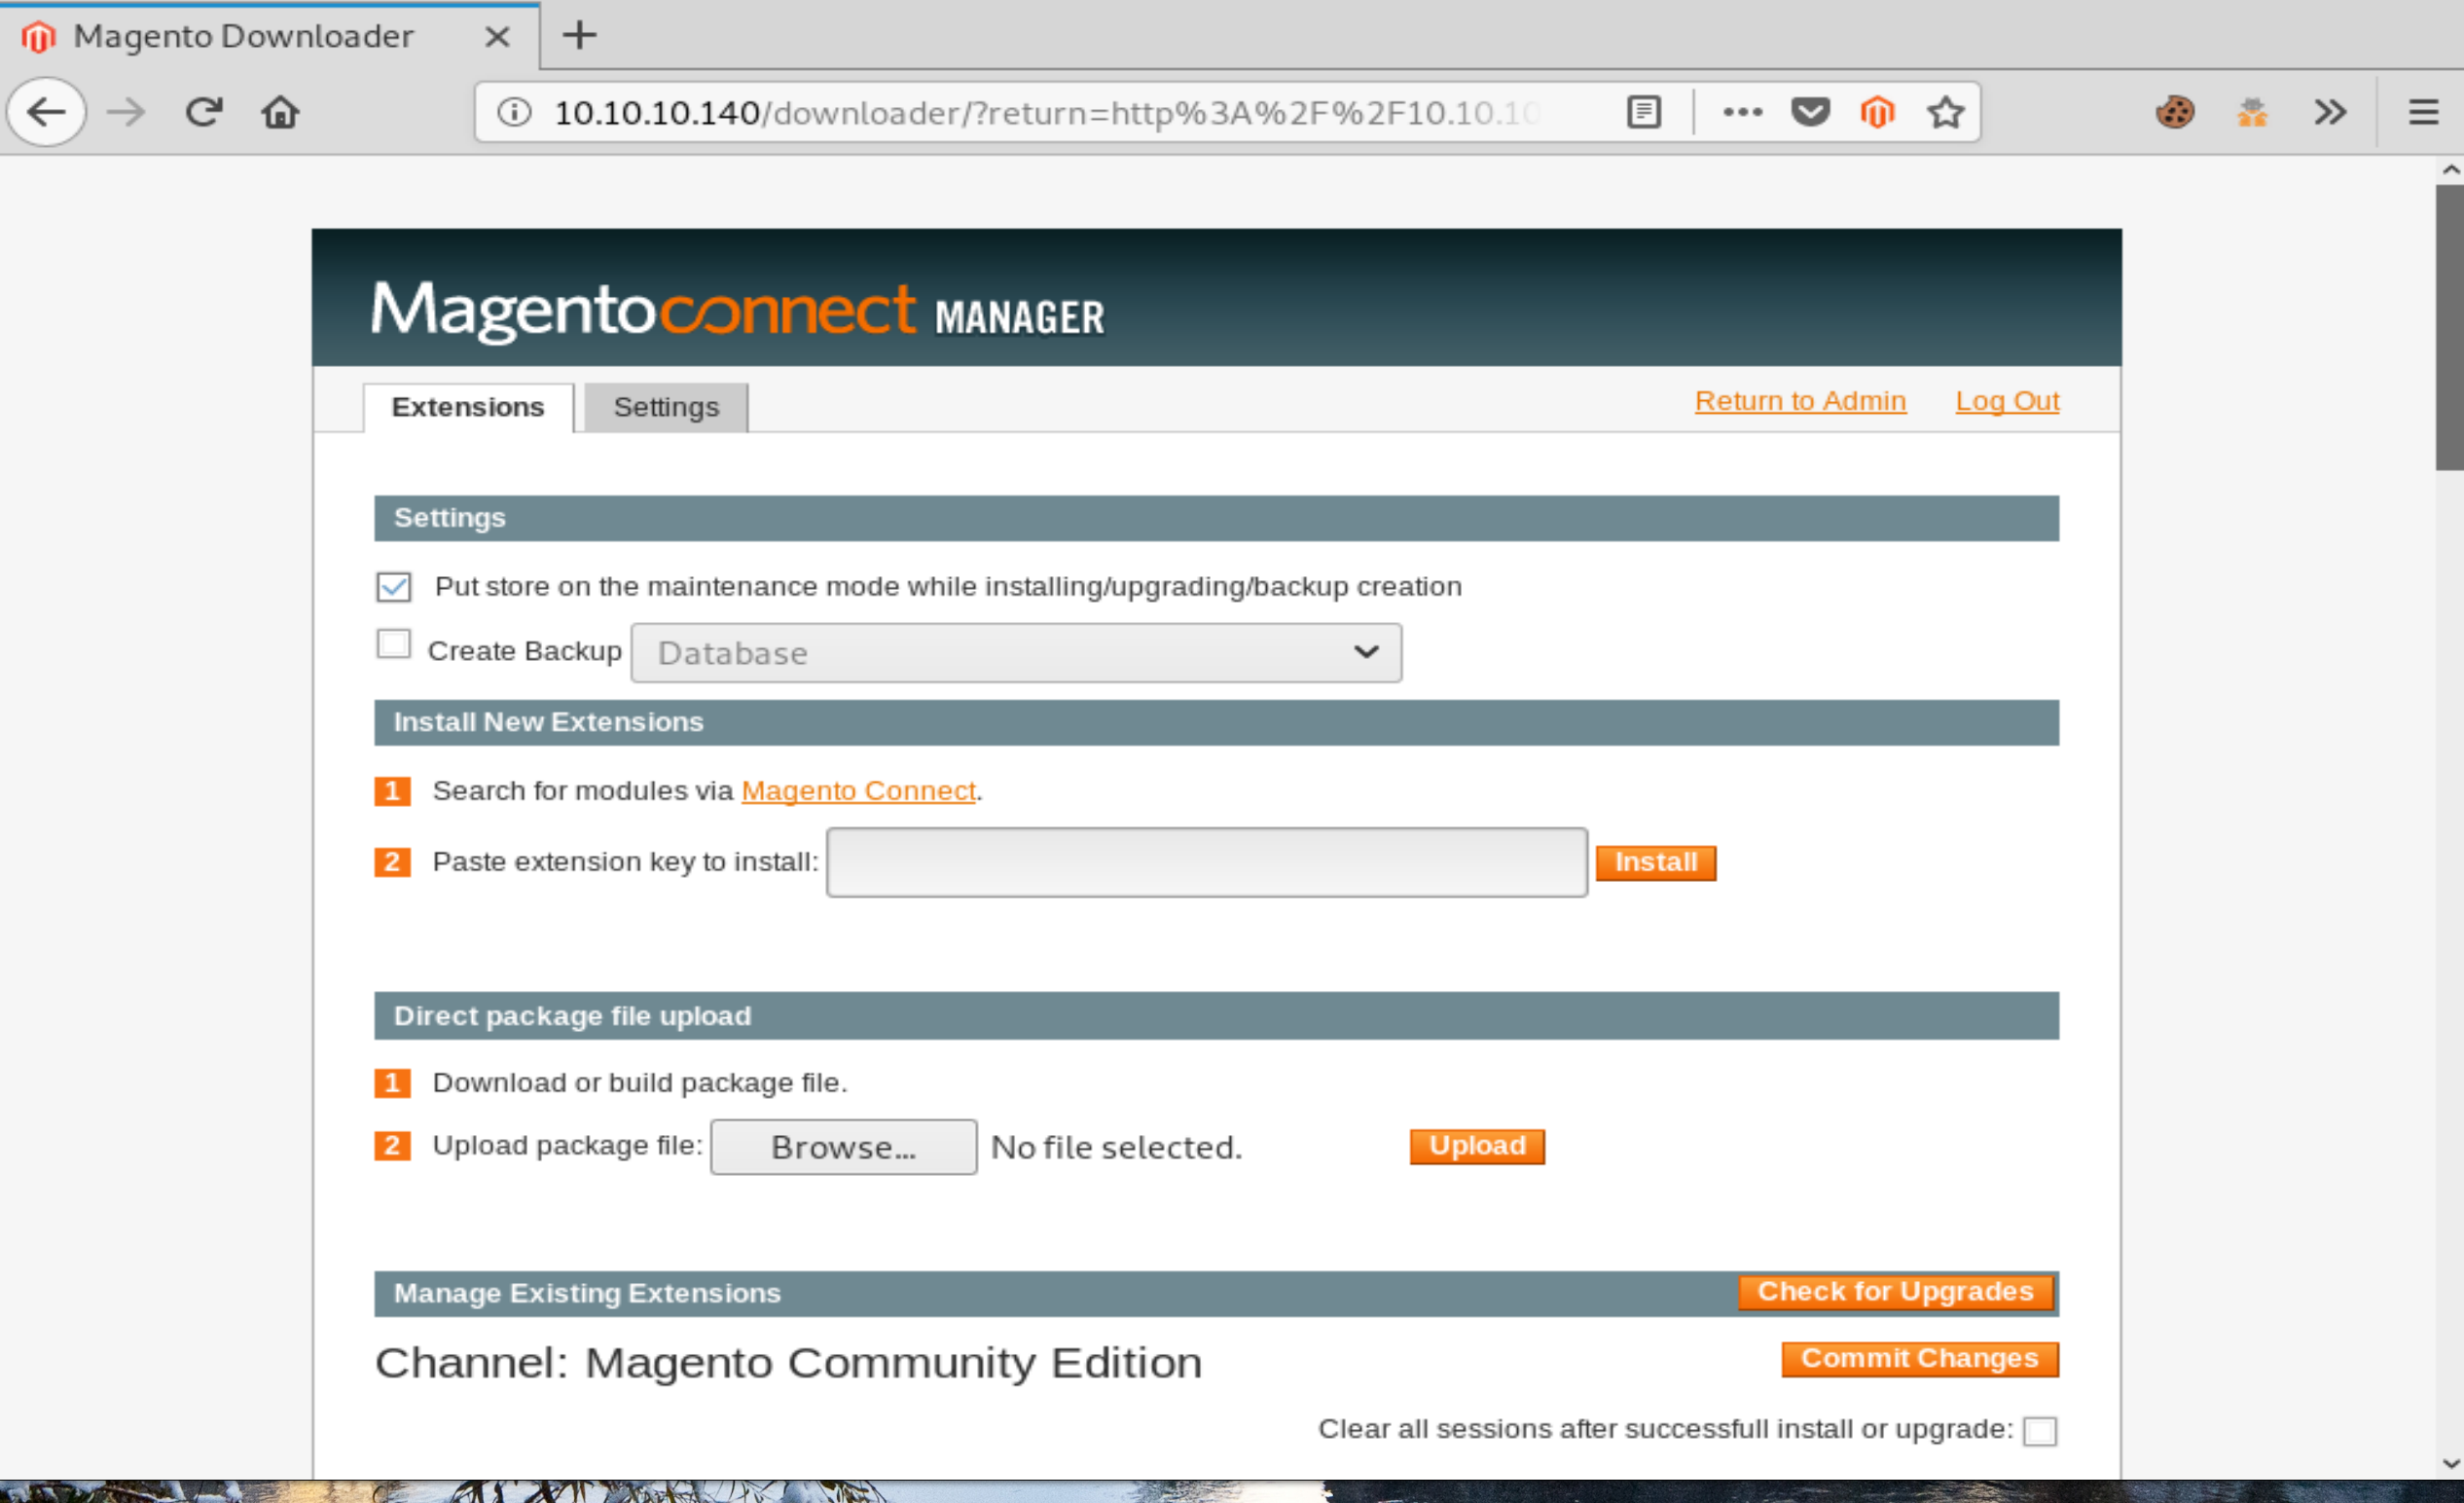 Magneto Connect Manager.